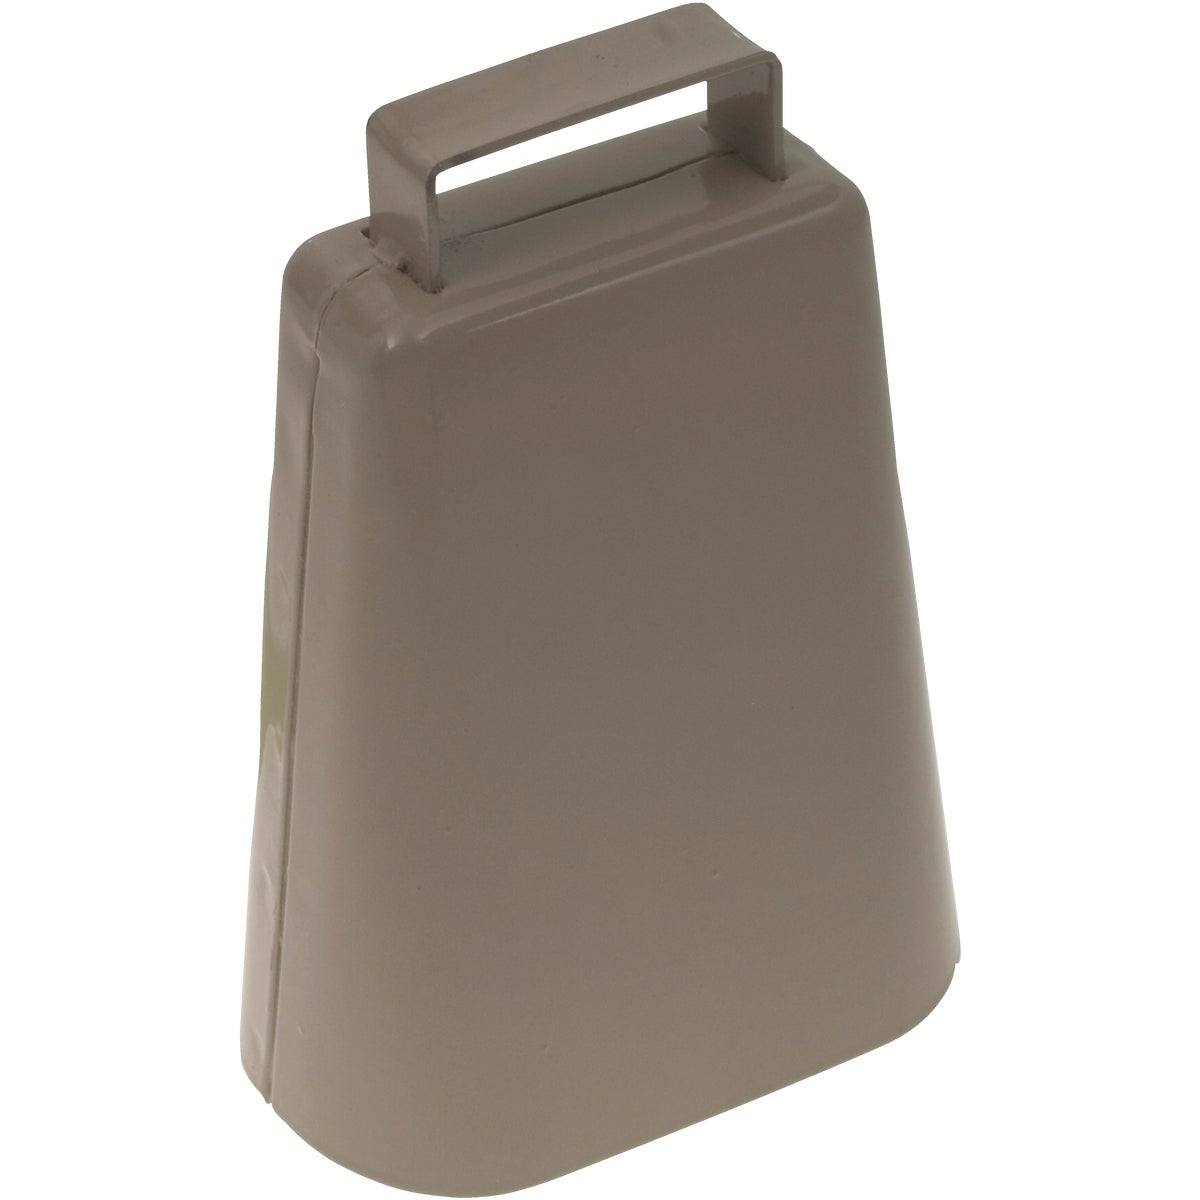 "2-5/8"" 6K COWBELL - S90070600-CB900706 by Speeco Farmex"